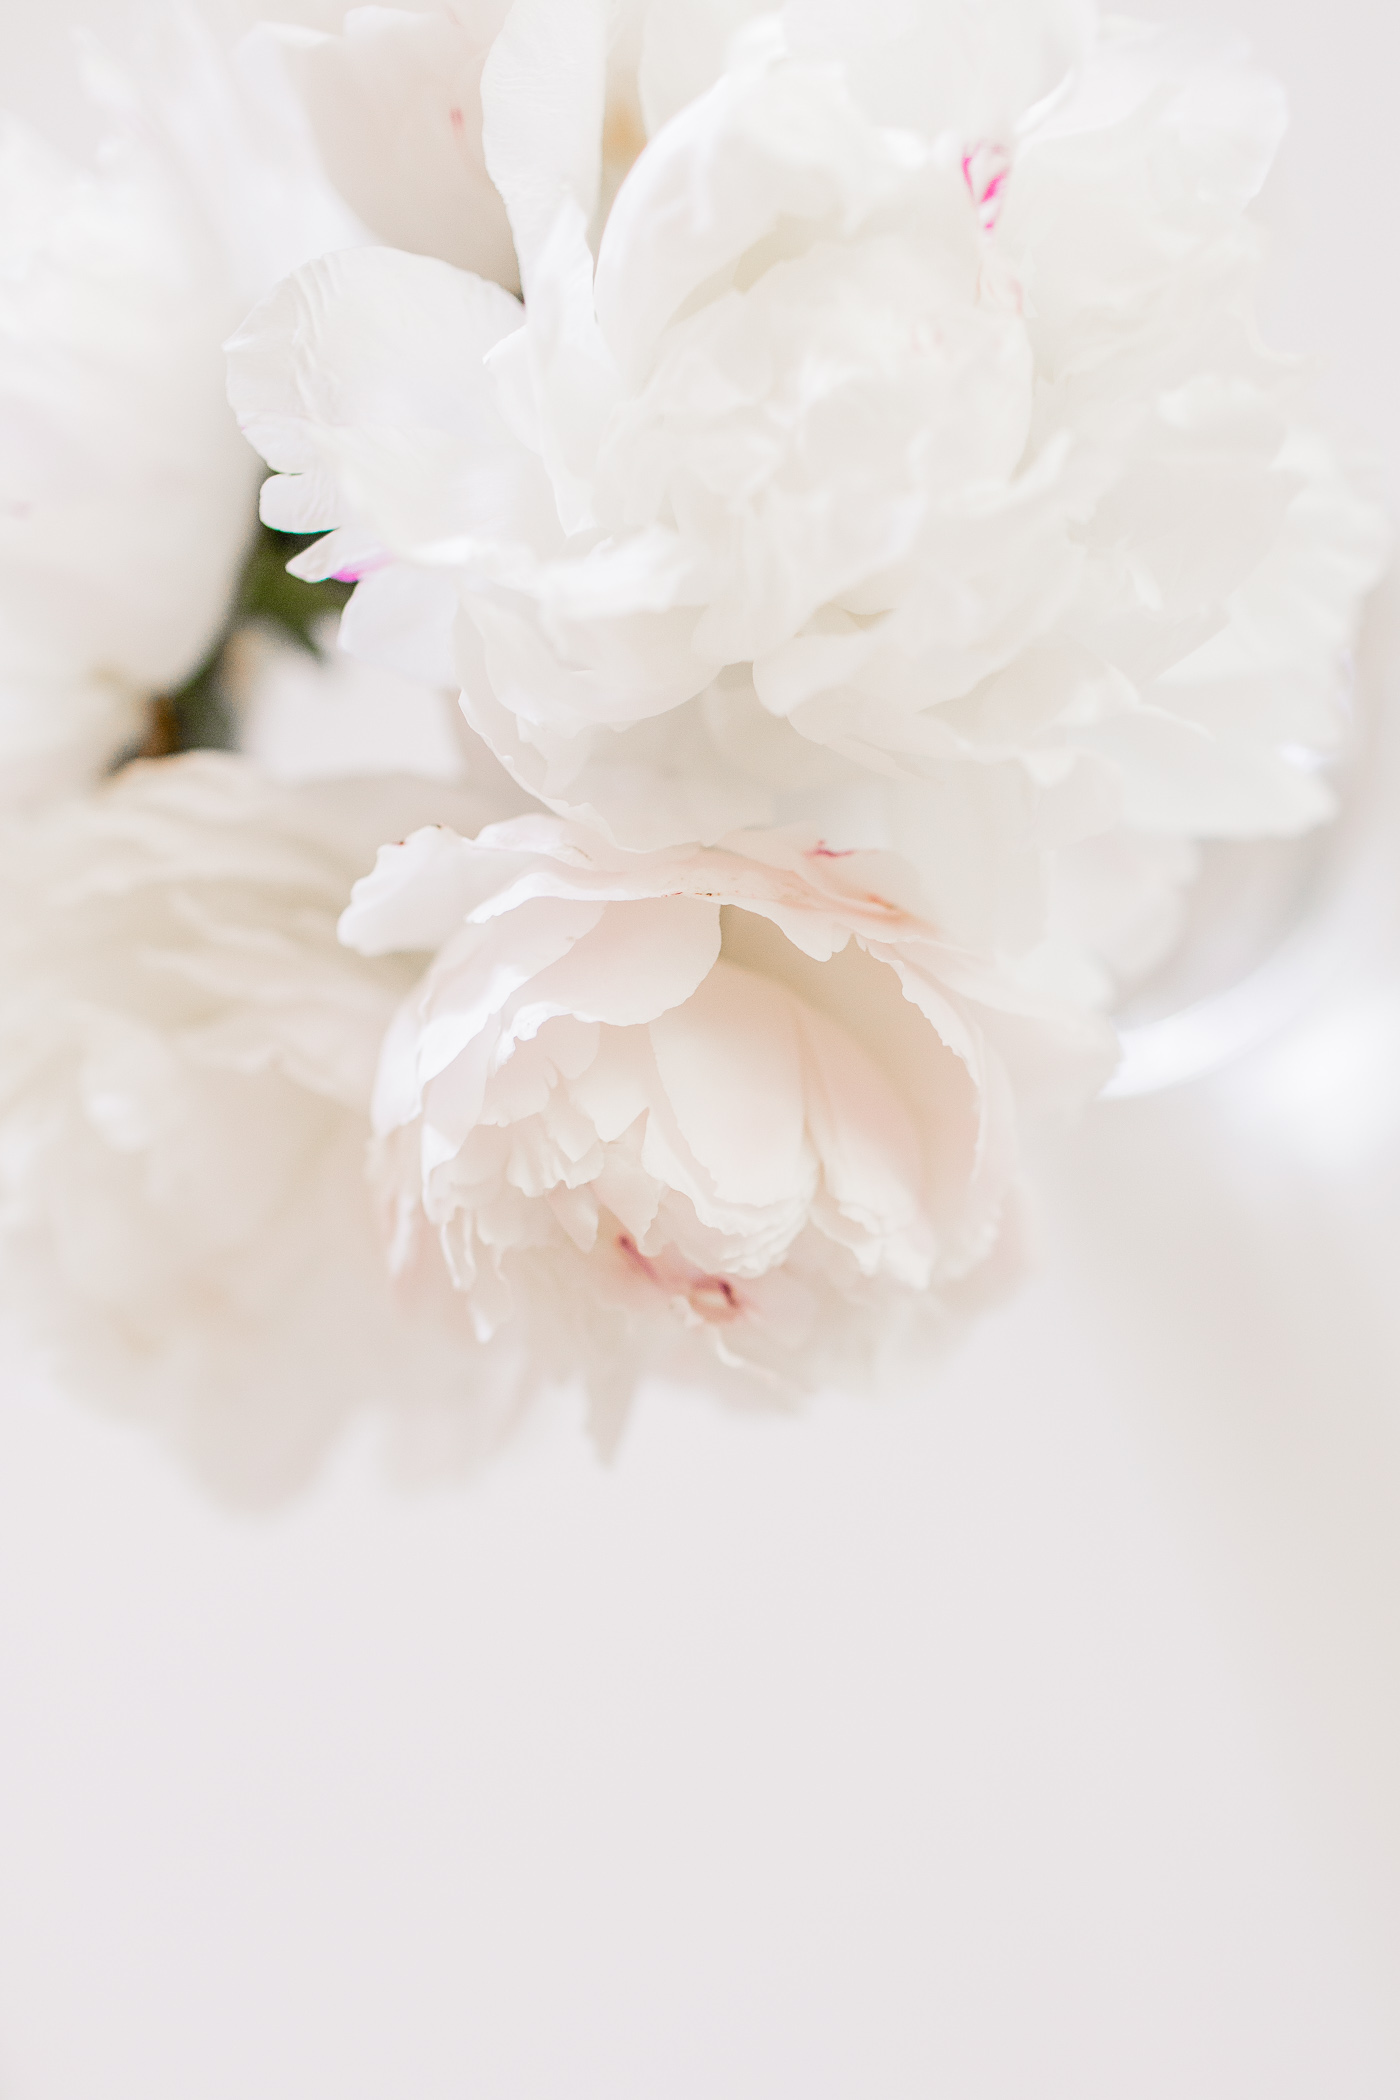 White peonies in a vase.